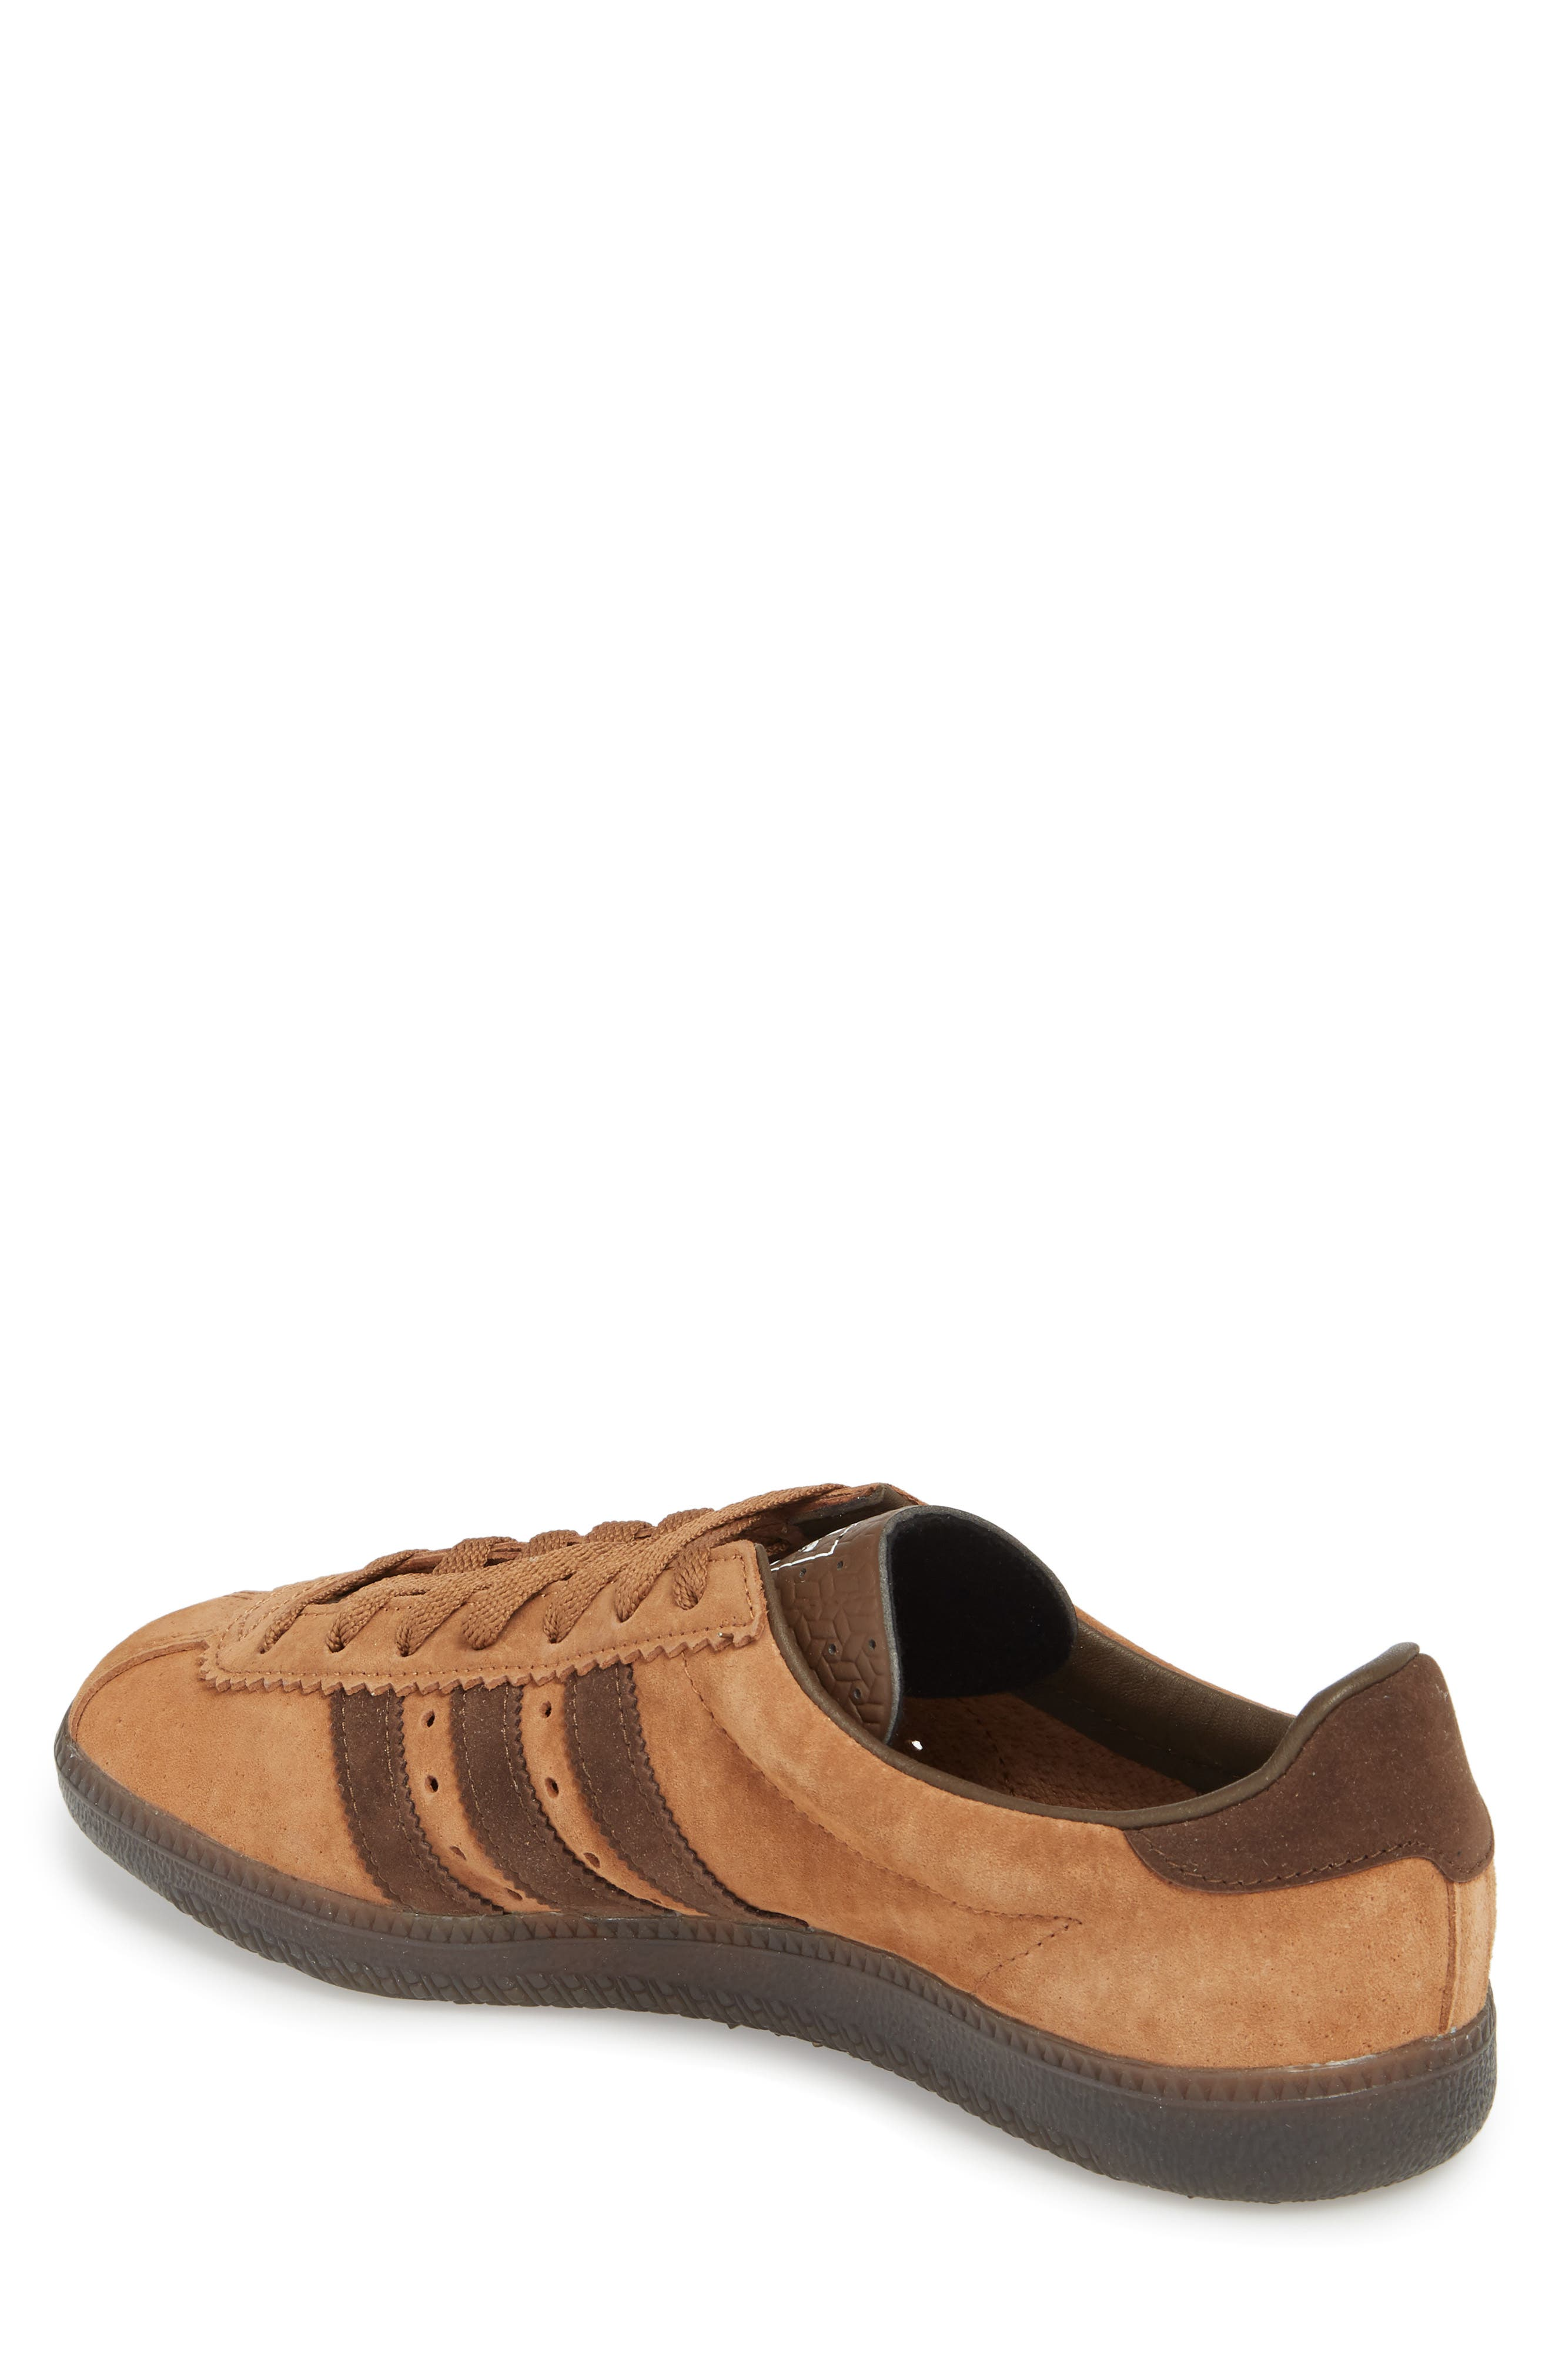 Padiham SPZL Sneaker,                             Alternate thumbnail 2, color,                             Brown